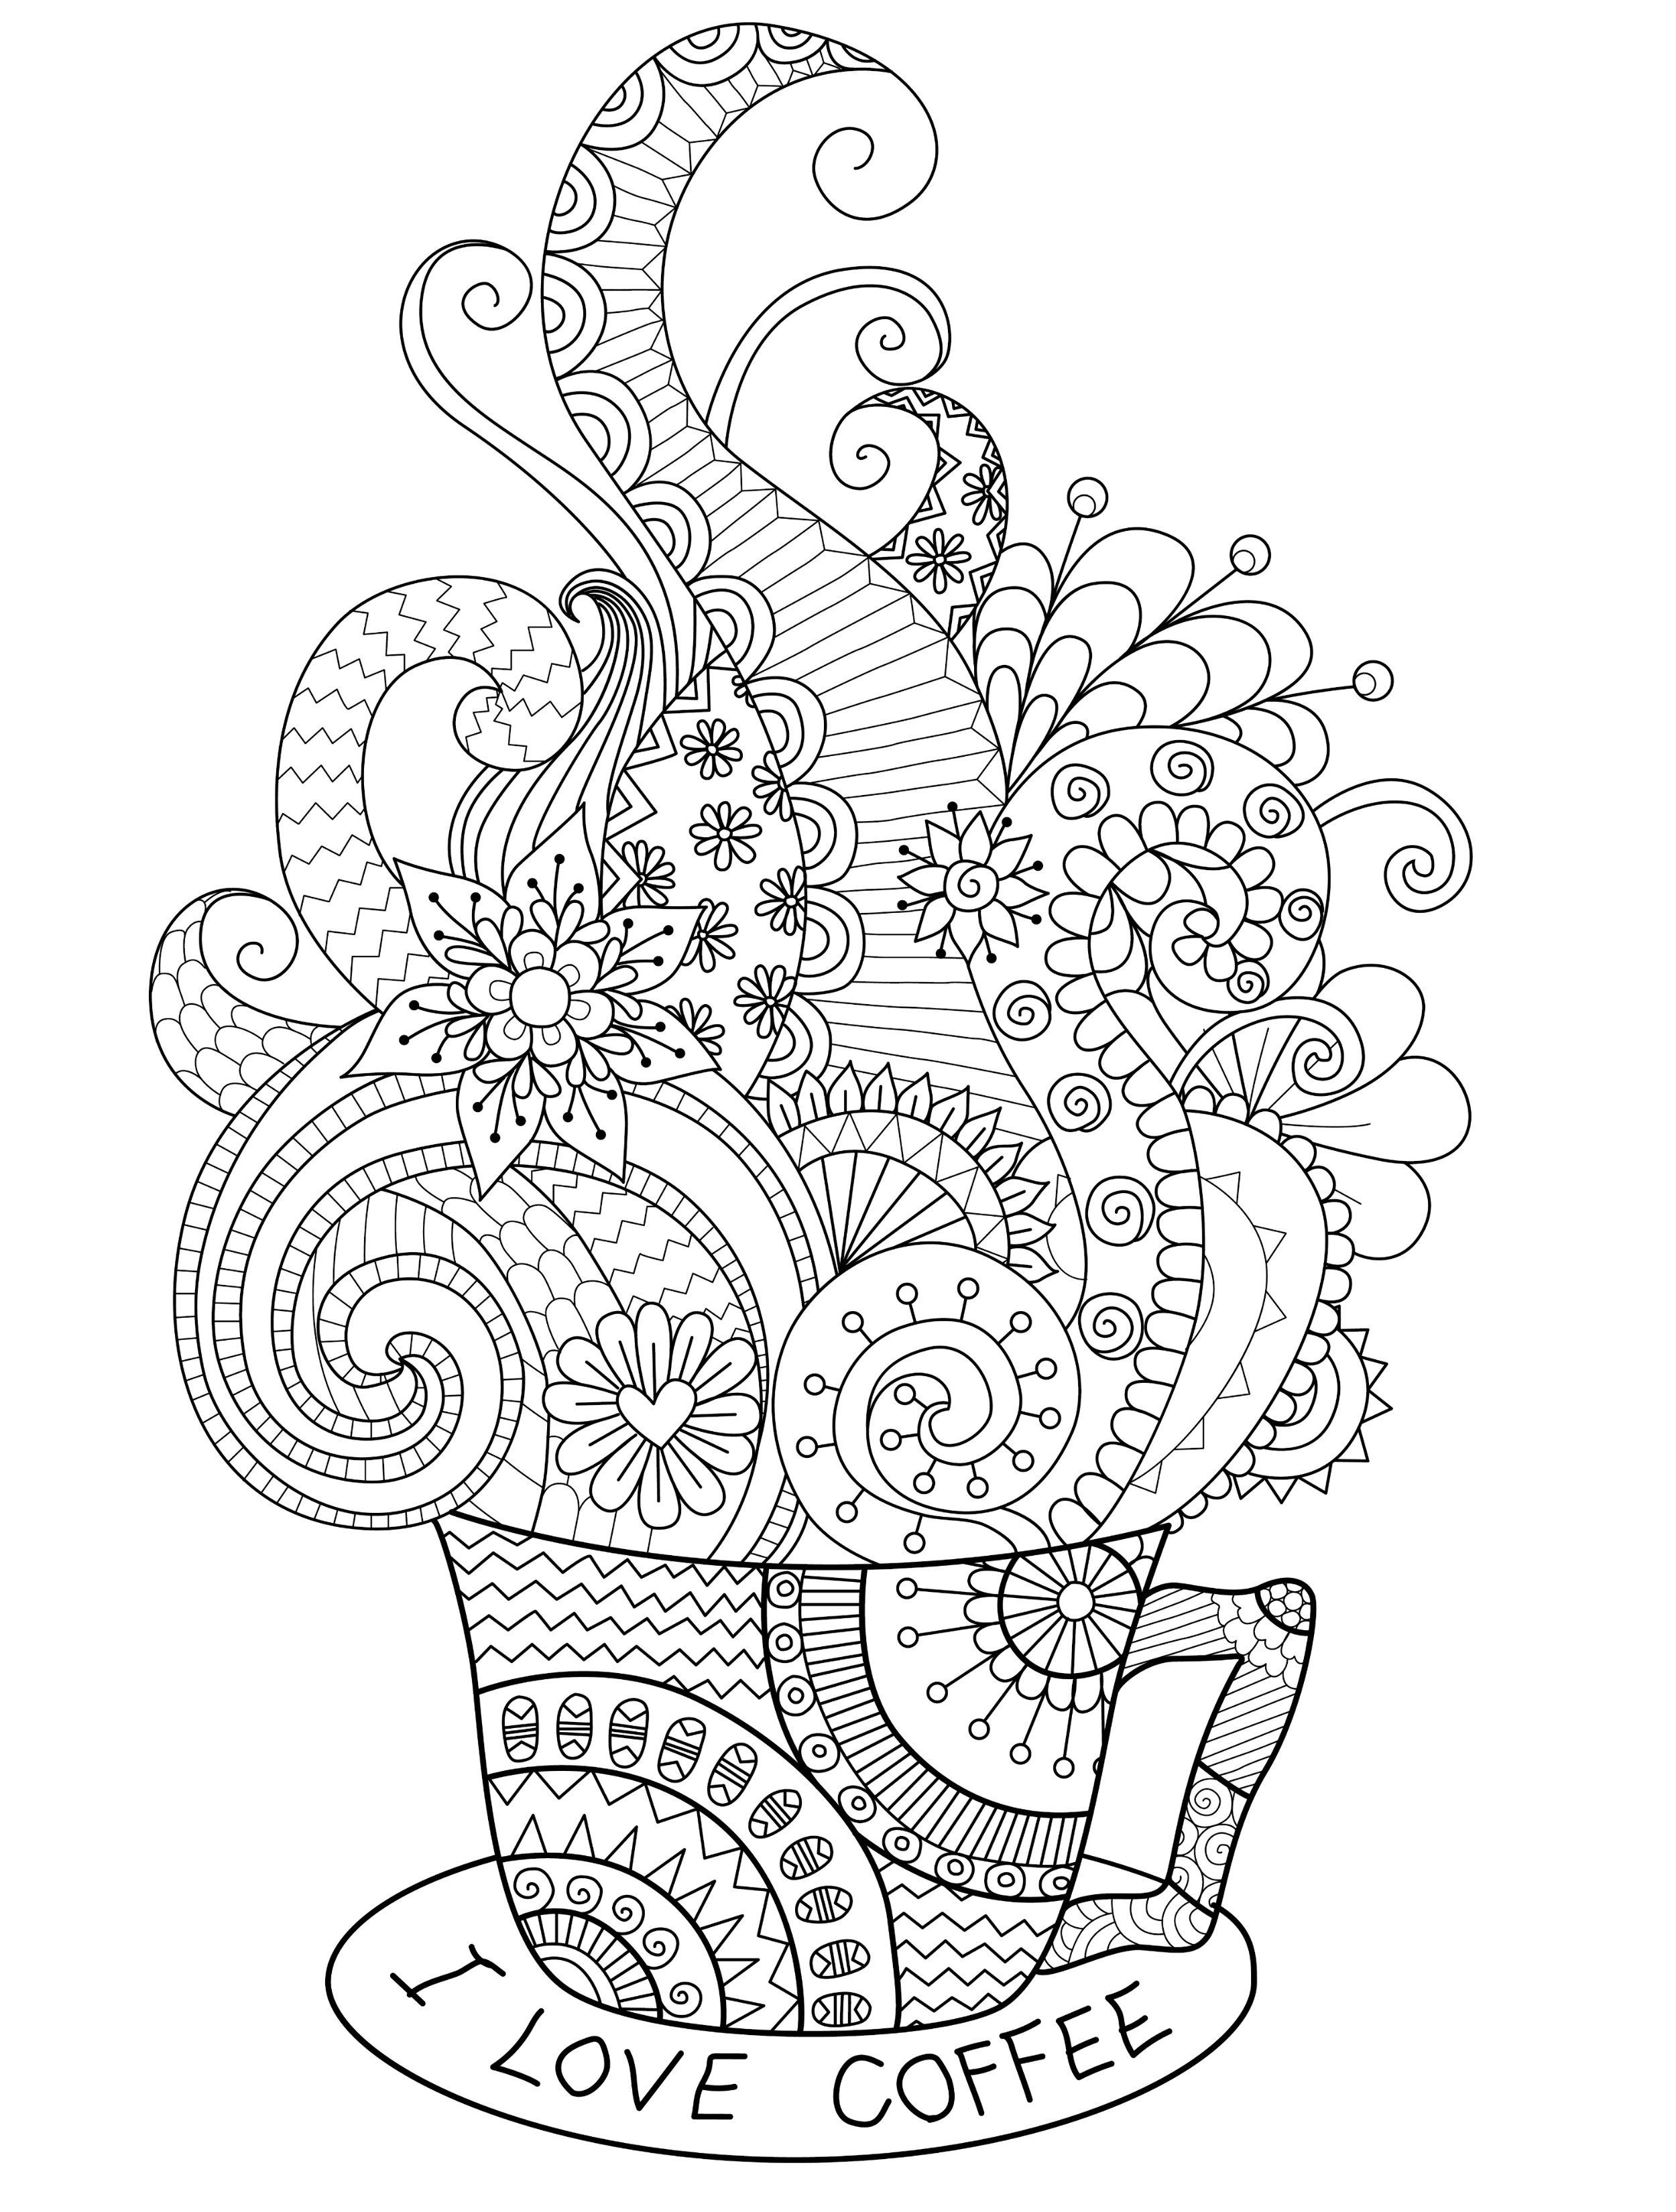 I Love Coffee Adult Coloring Page You Can Print For Free Baby